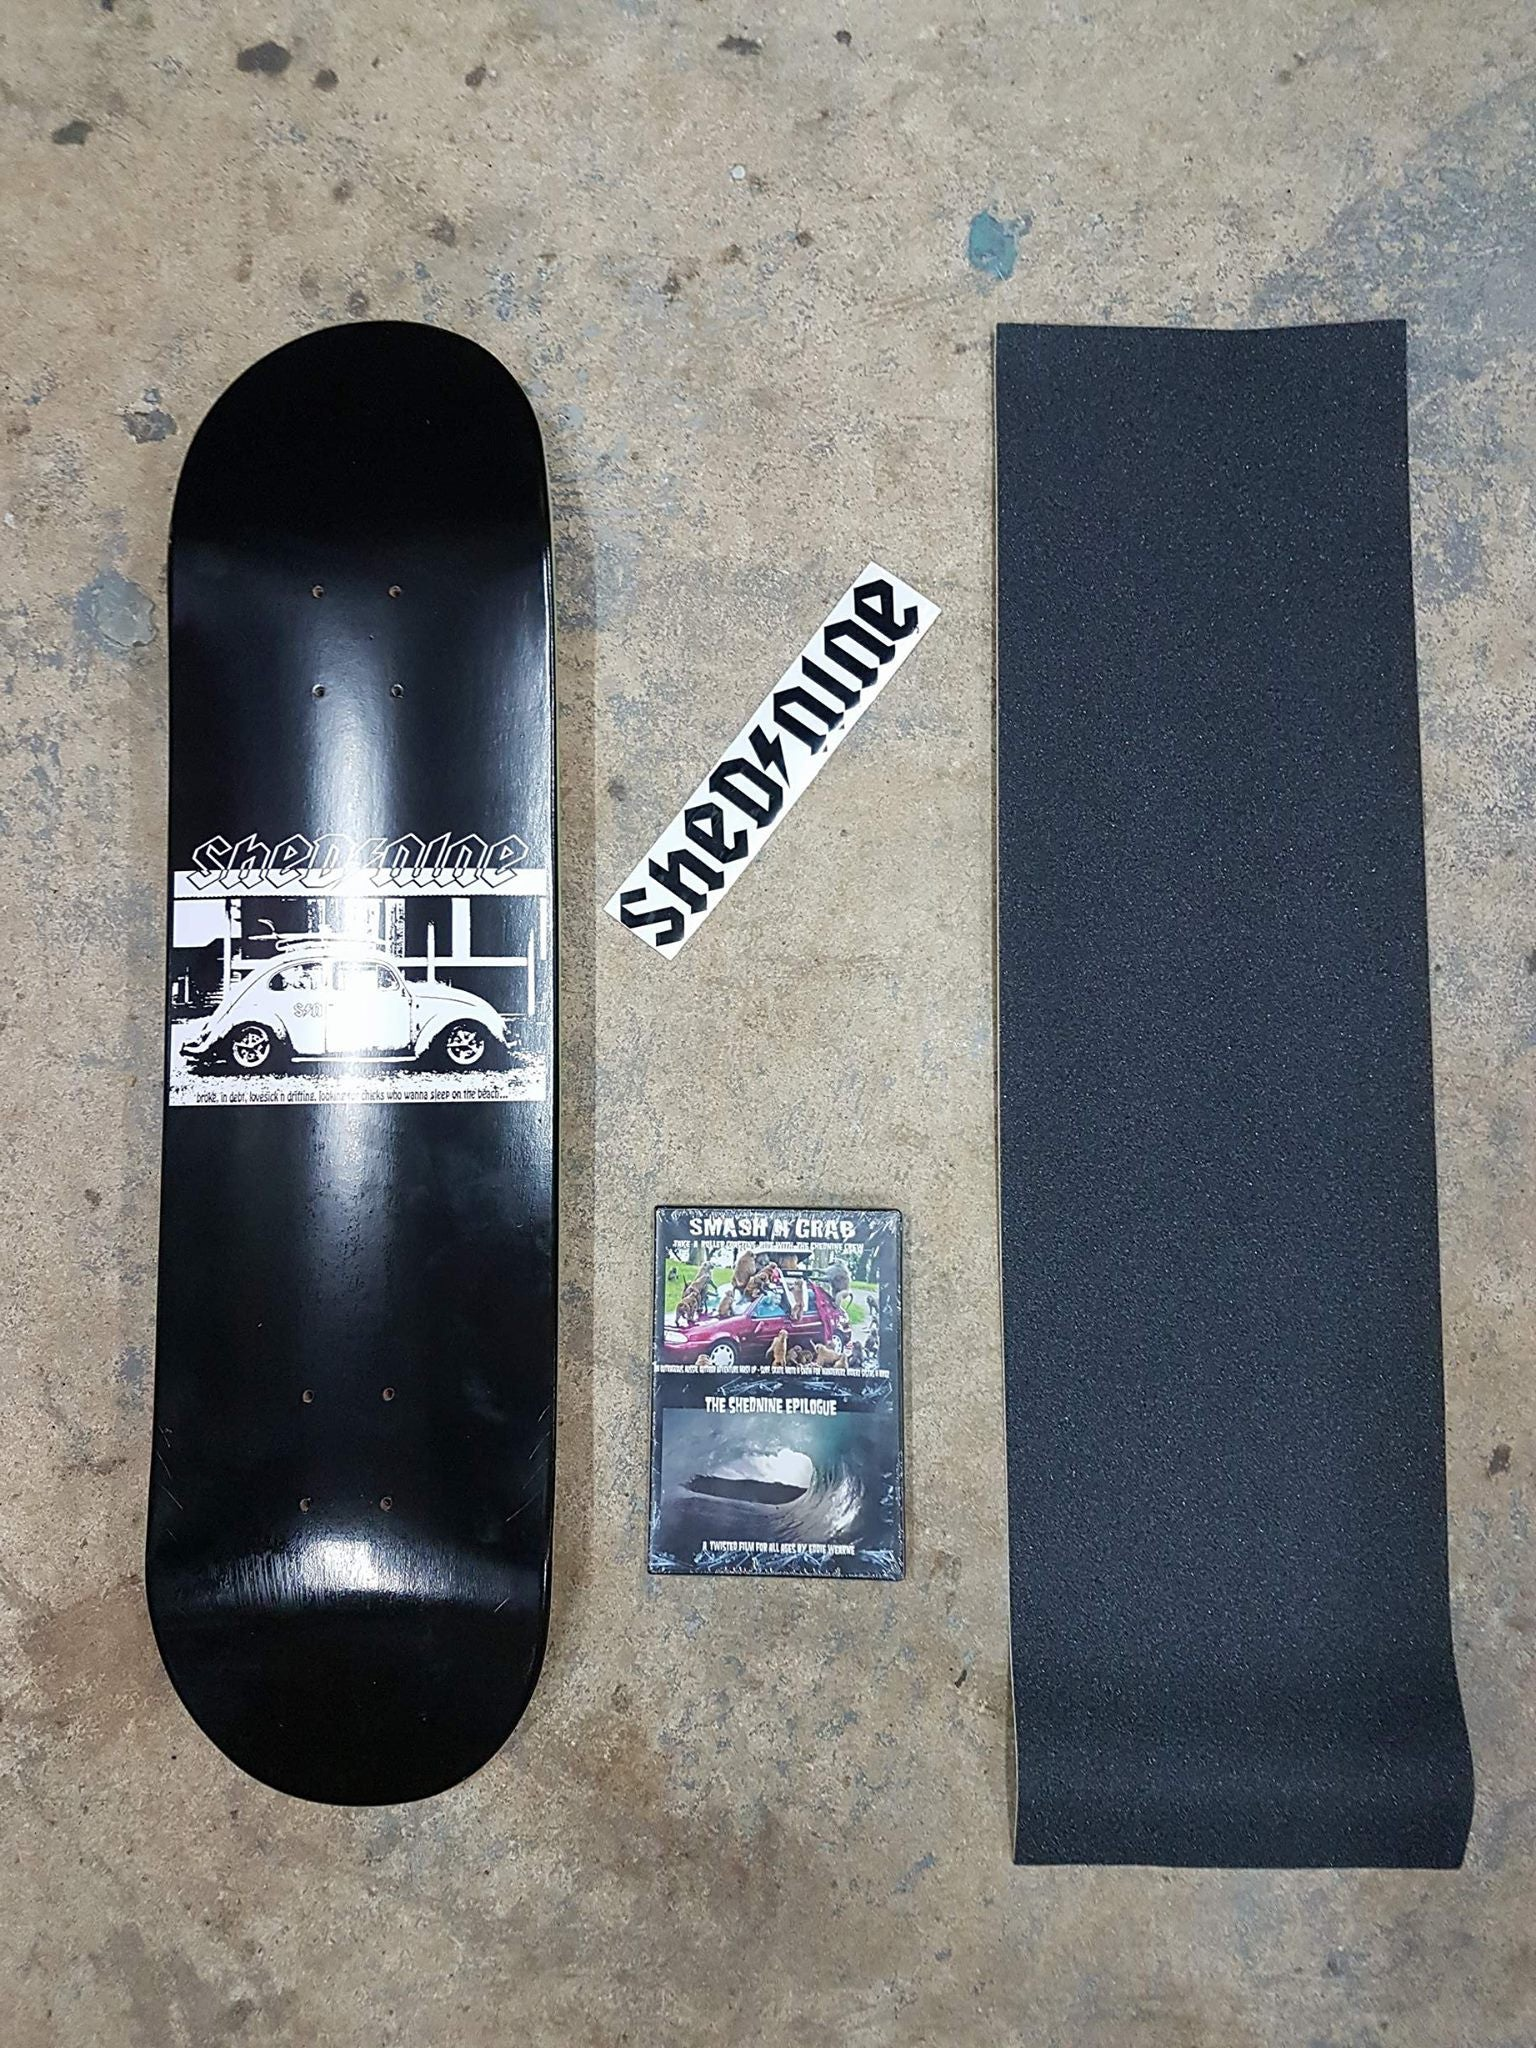 Vee Dub Street Deck, Grip Dvd and Sticker -  Skateboard Deck, Shed Nine, Shed Nine